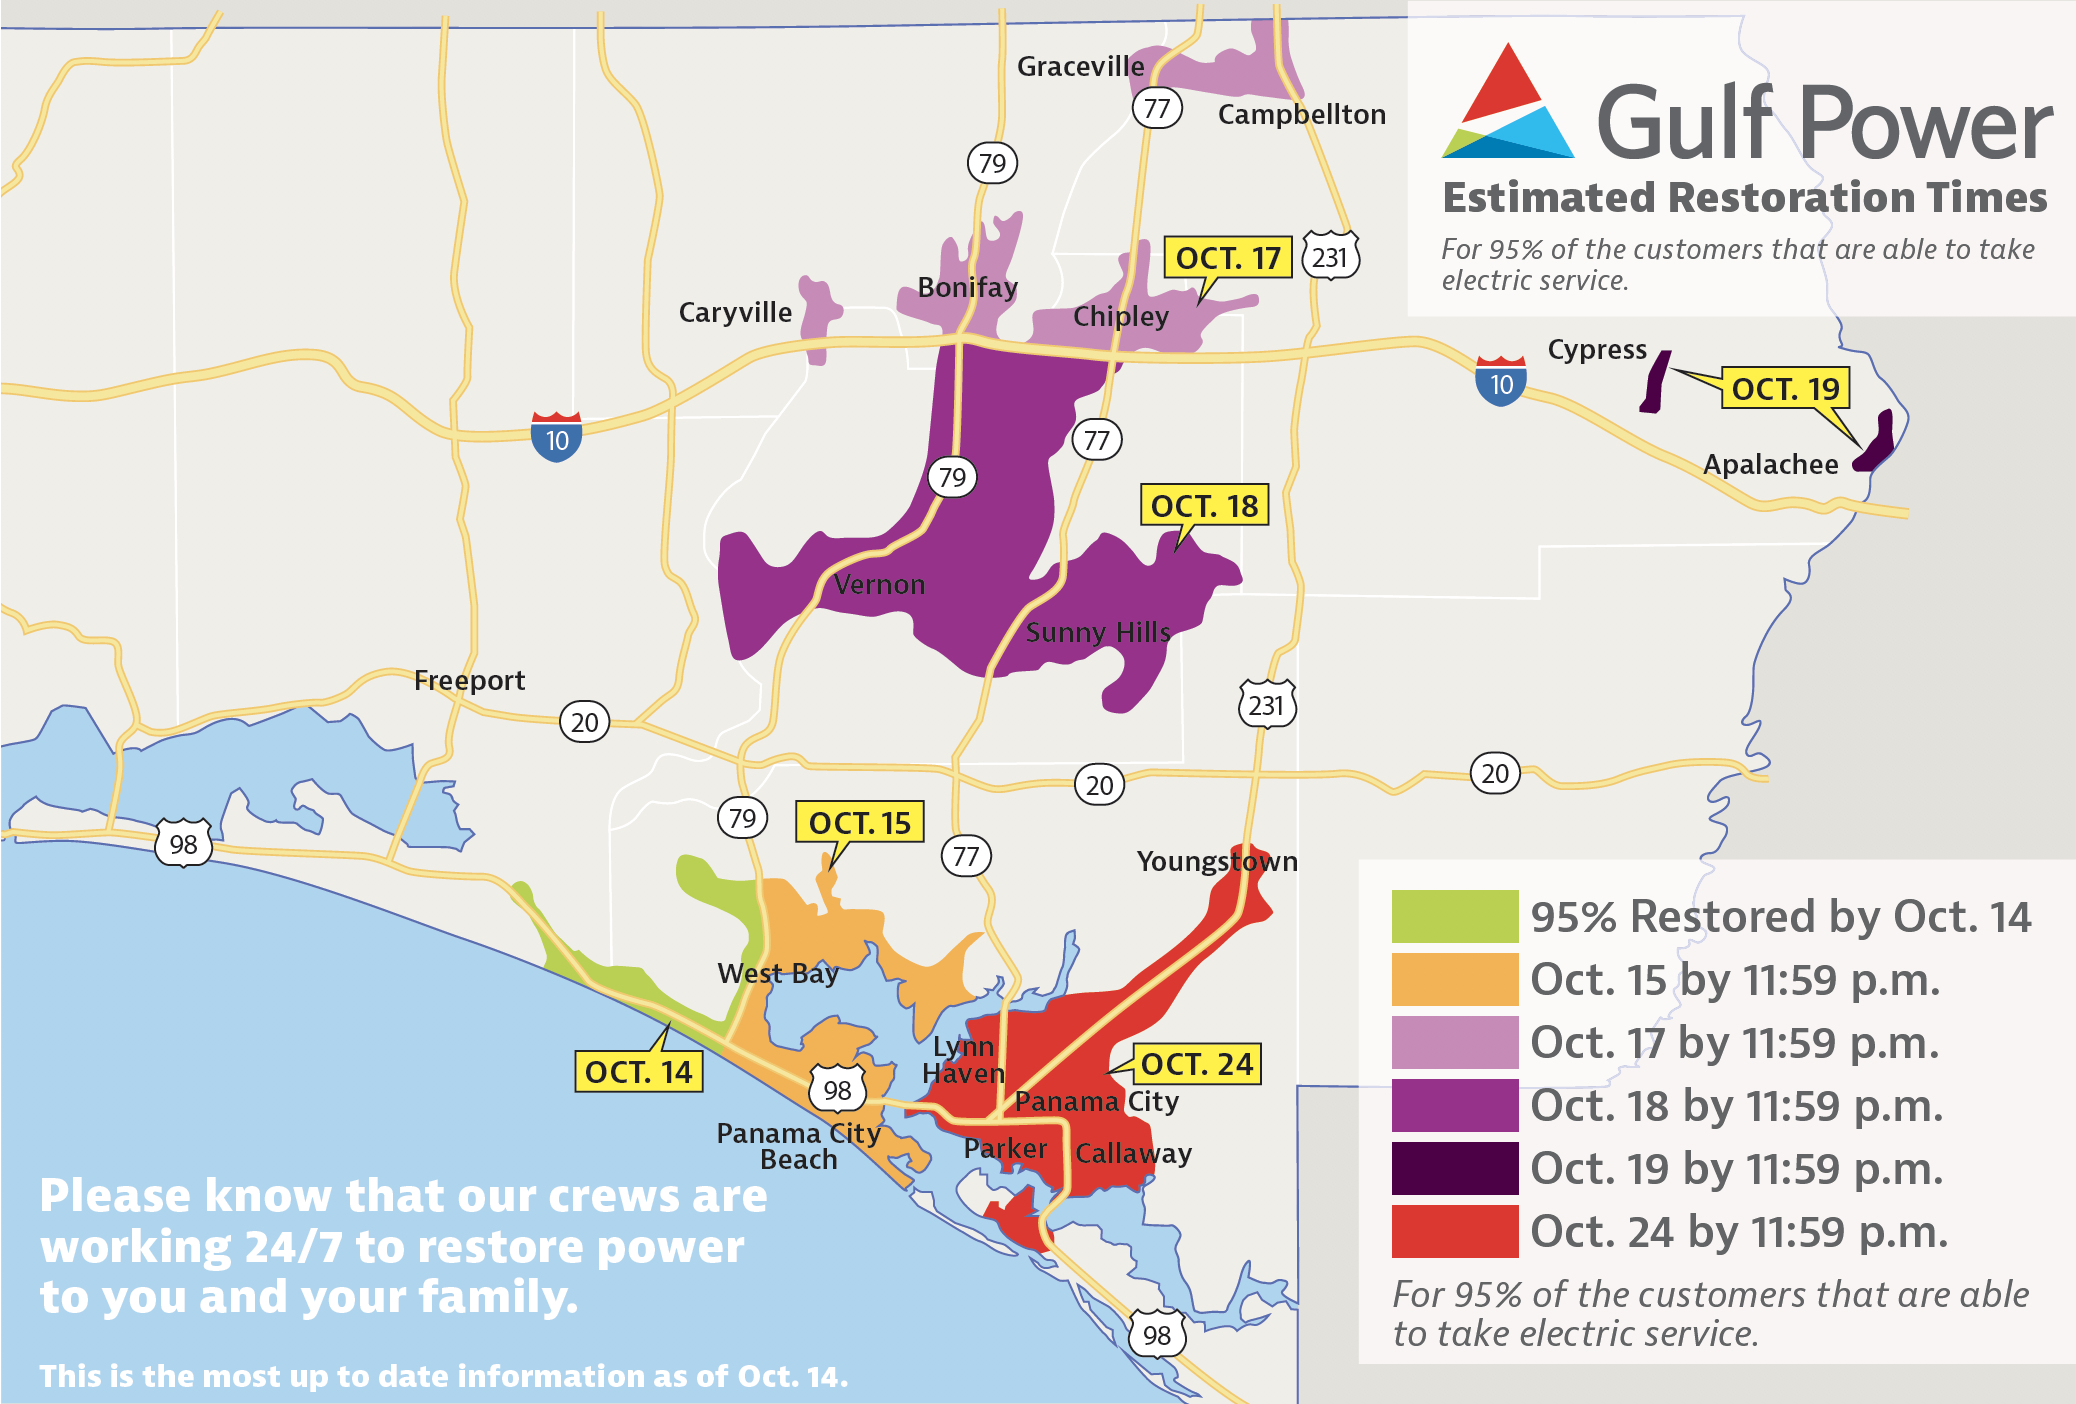 Estimated Restoration Times Announced For All Customers – Oct. 14 - Panama Florida Map